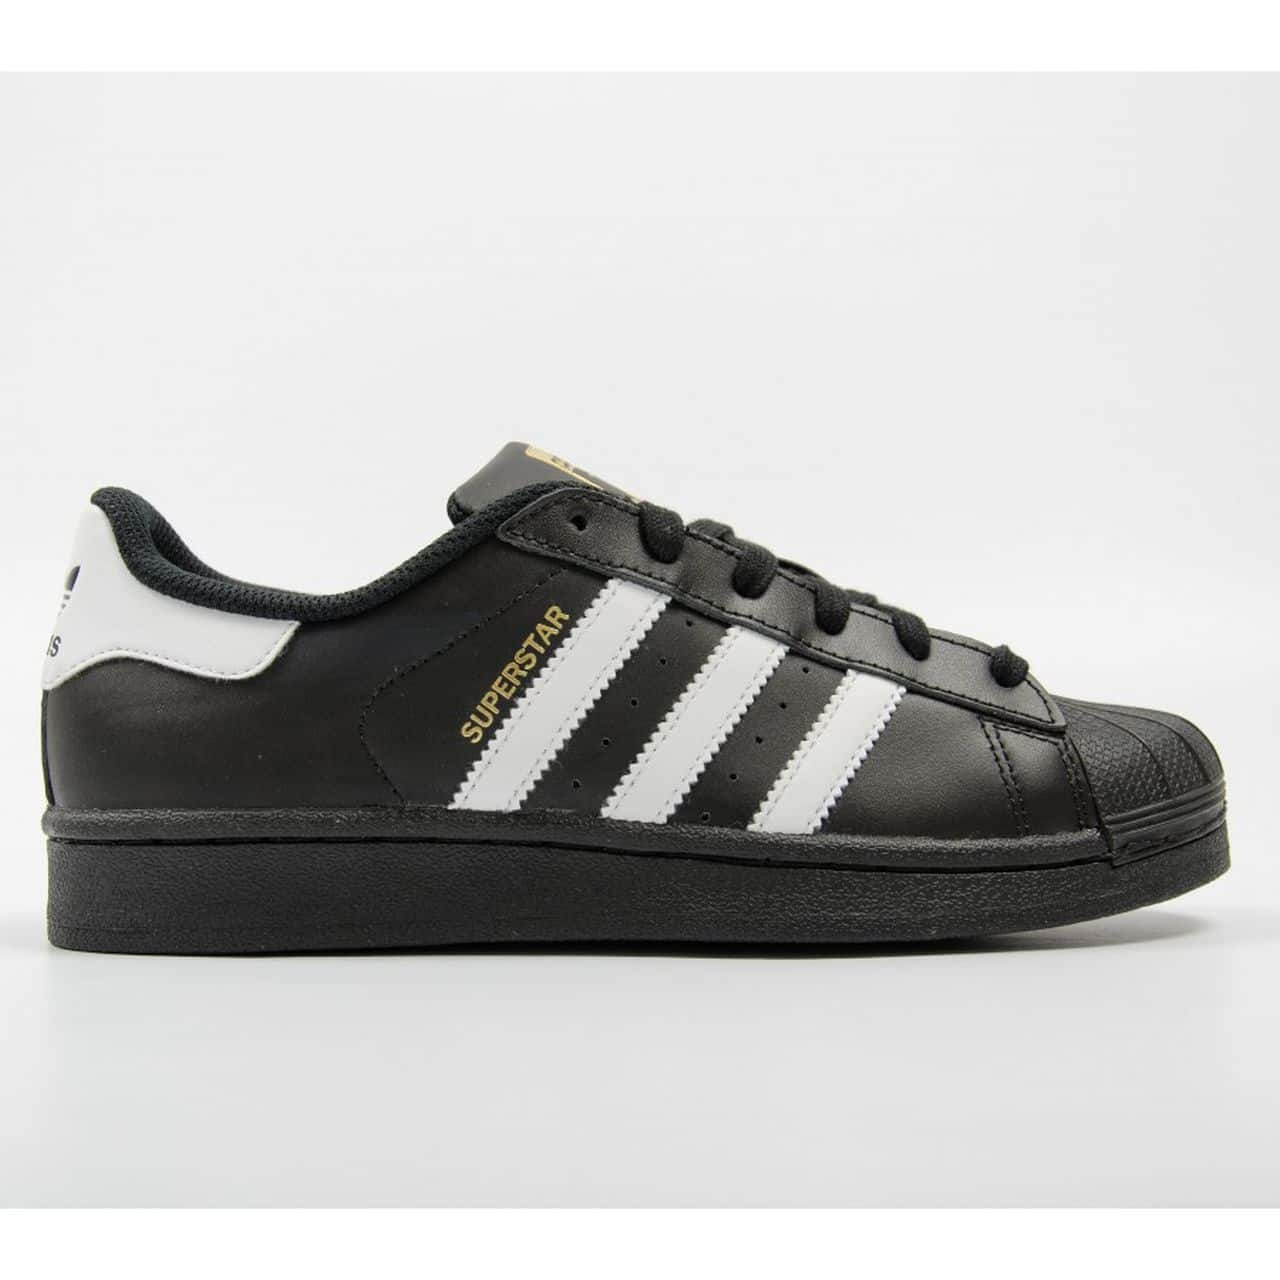 ADIDASI ORIGINALI ADIDAS SUPERSTAR FOUNDATION J - B23642